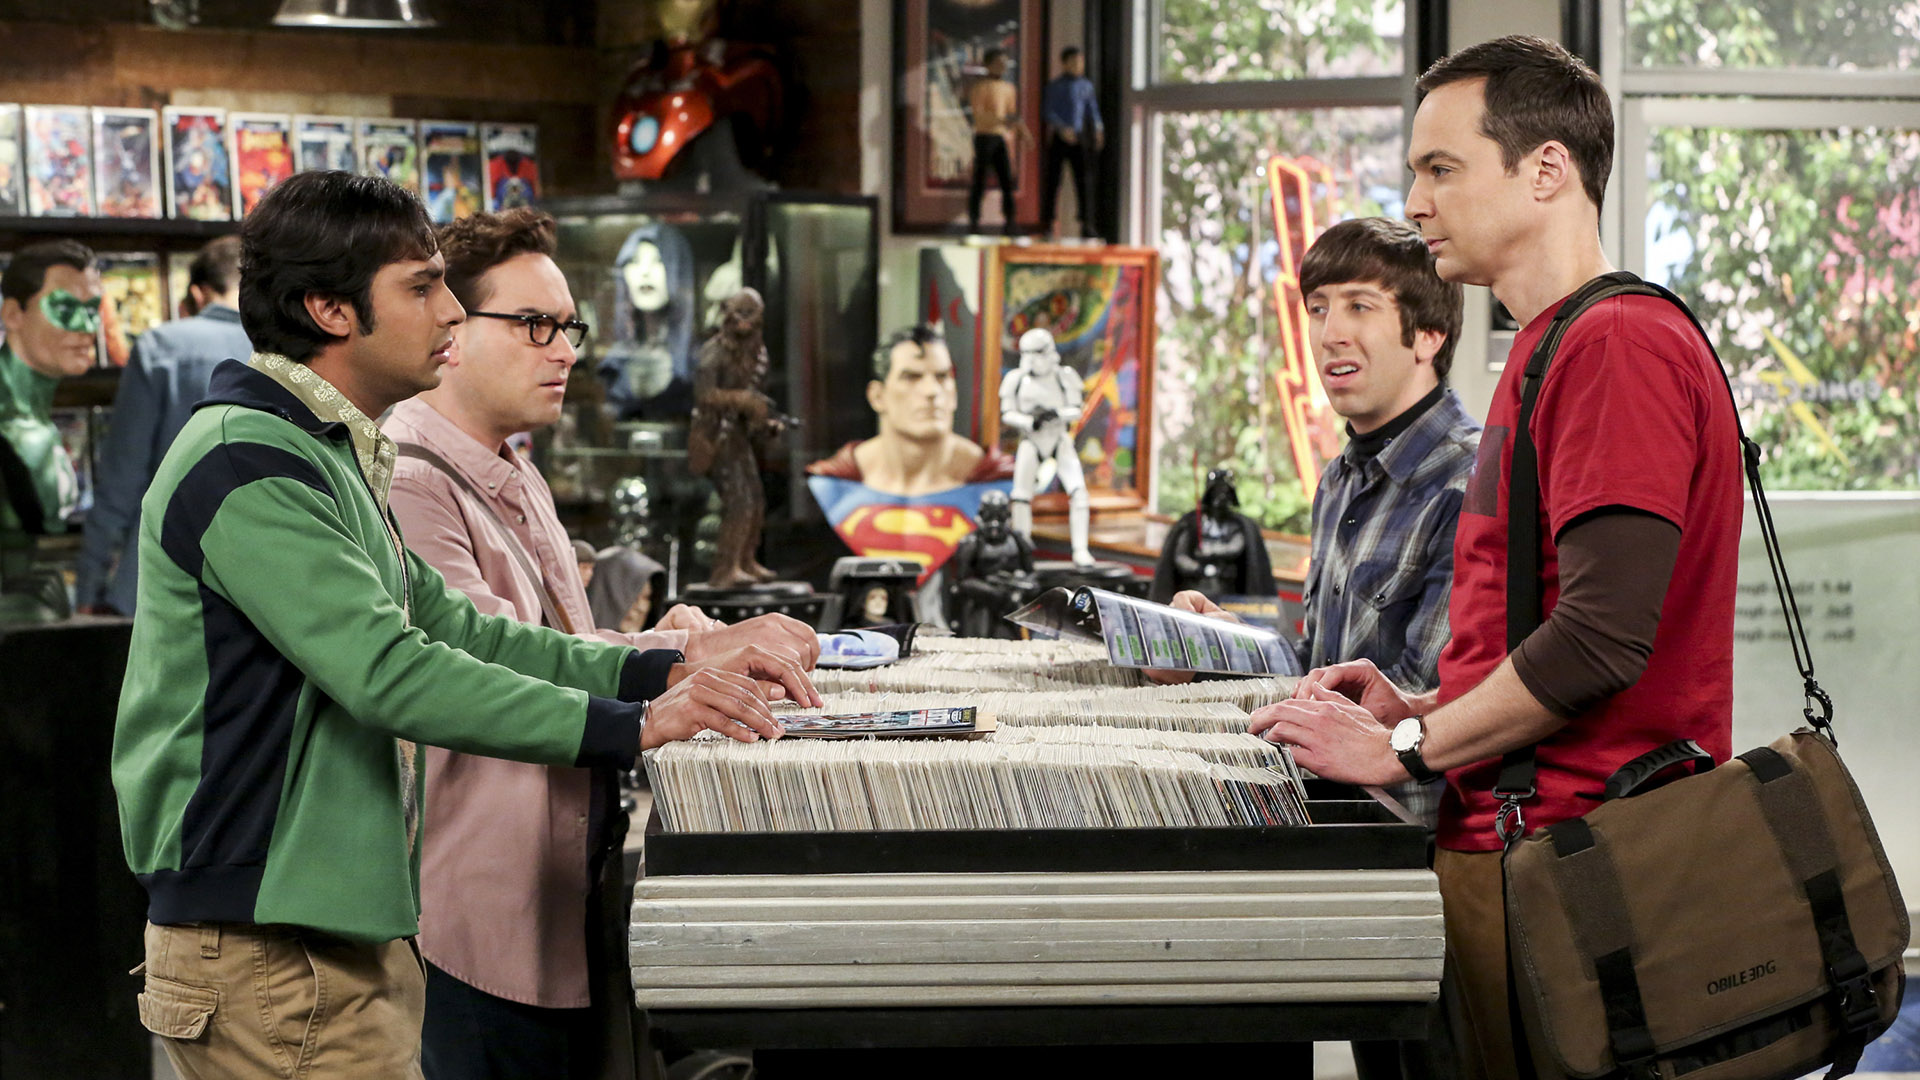 When it comes to science and pop culture, these four are thick as thieves.